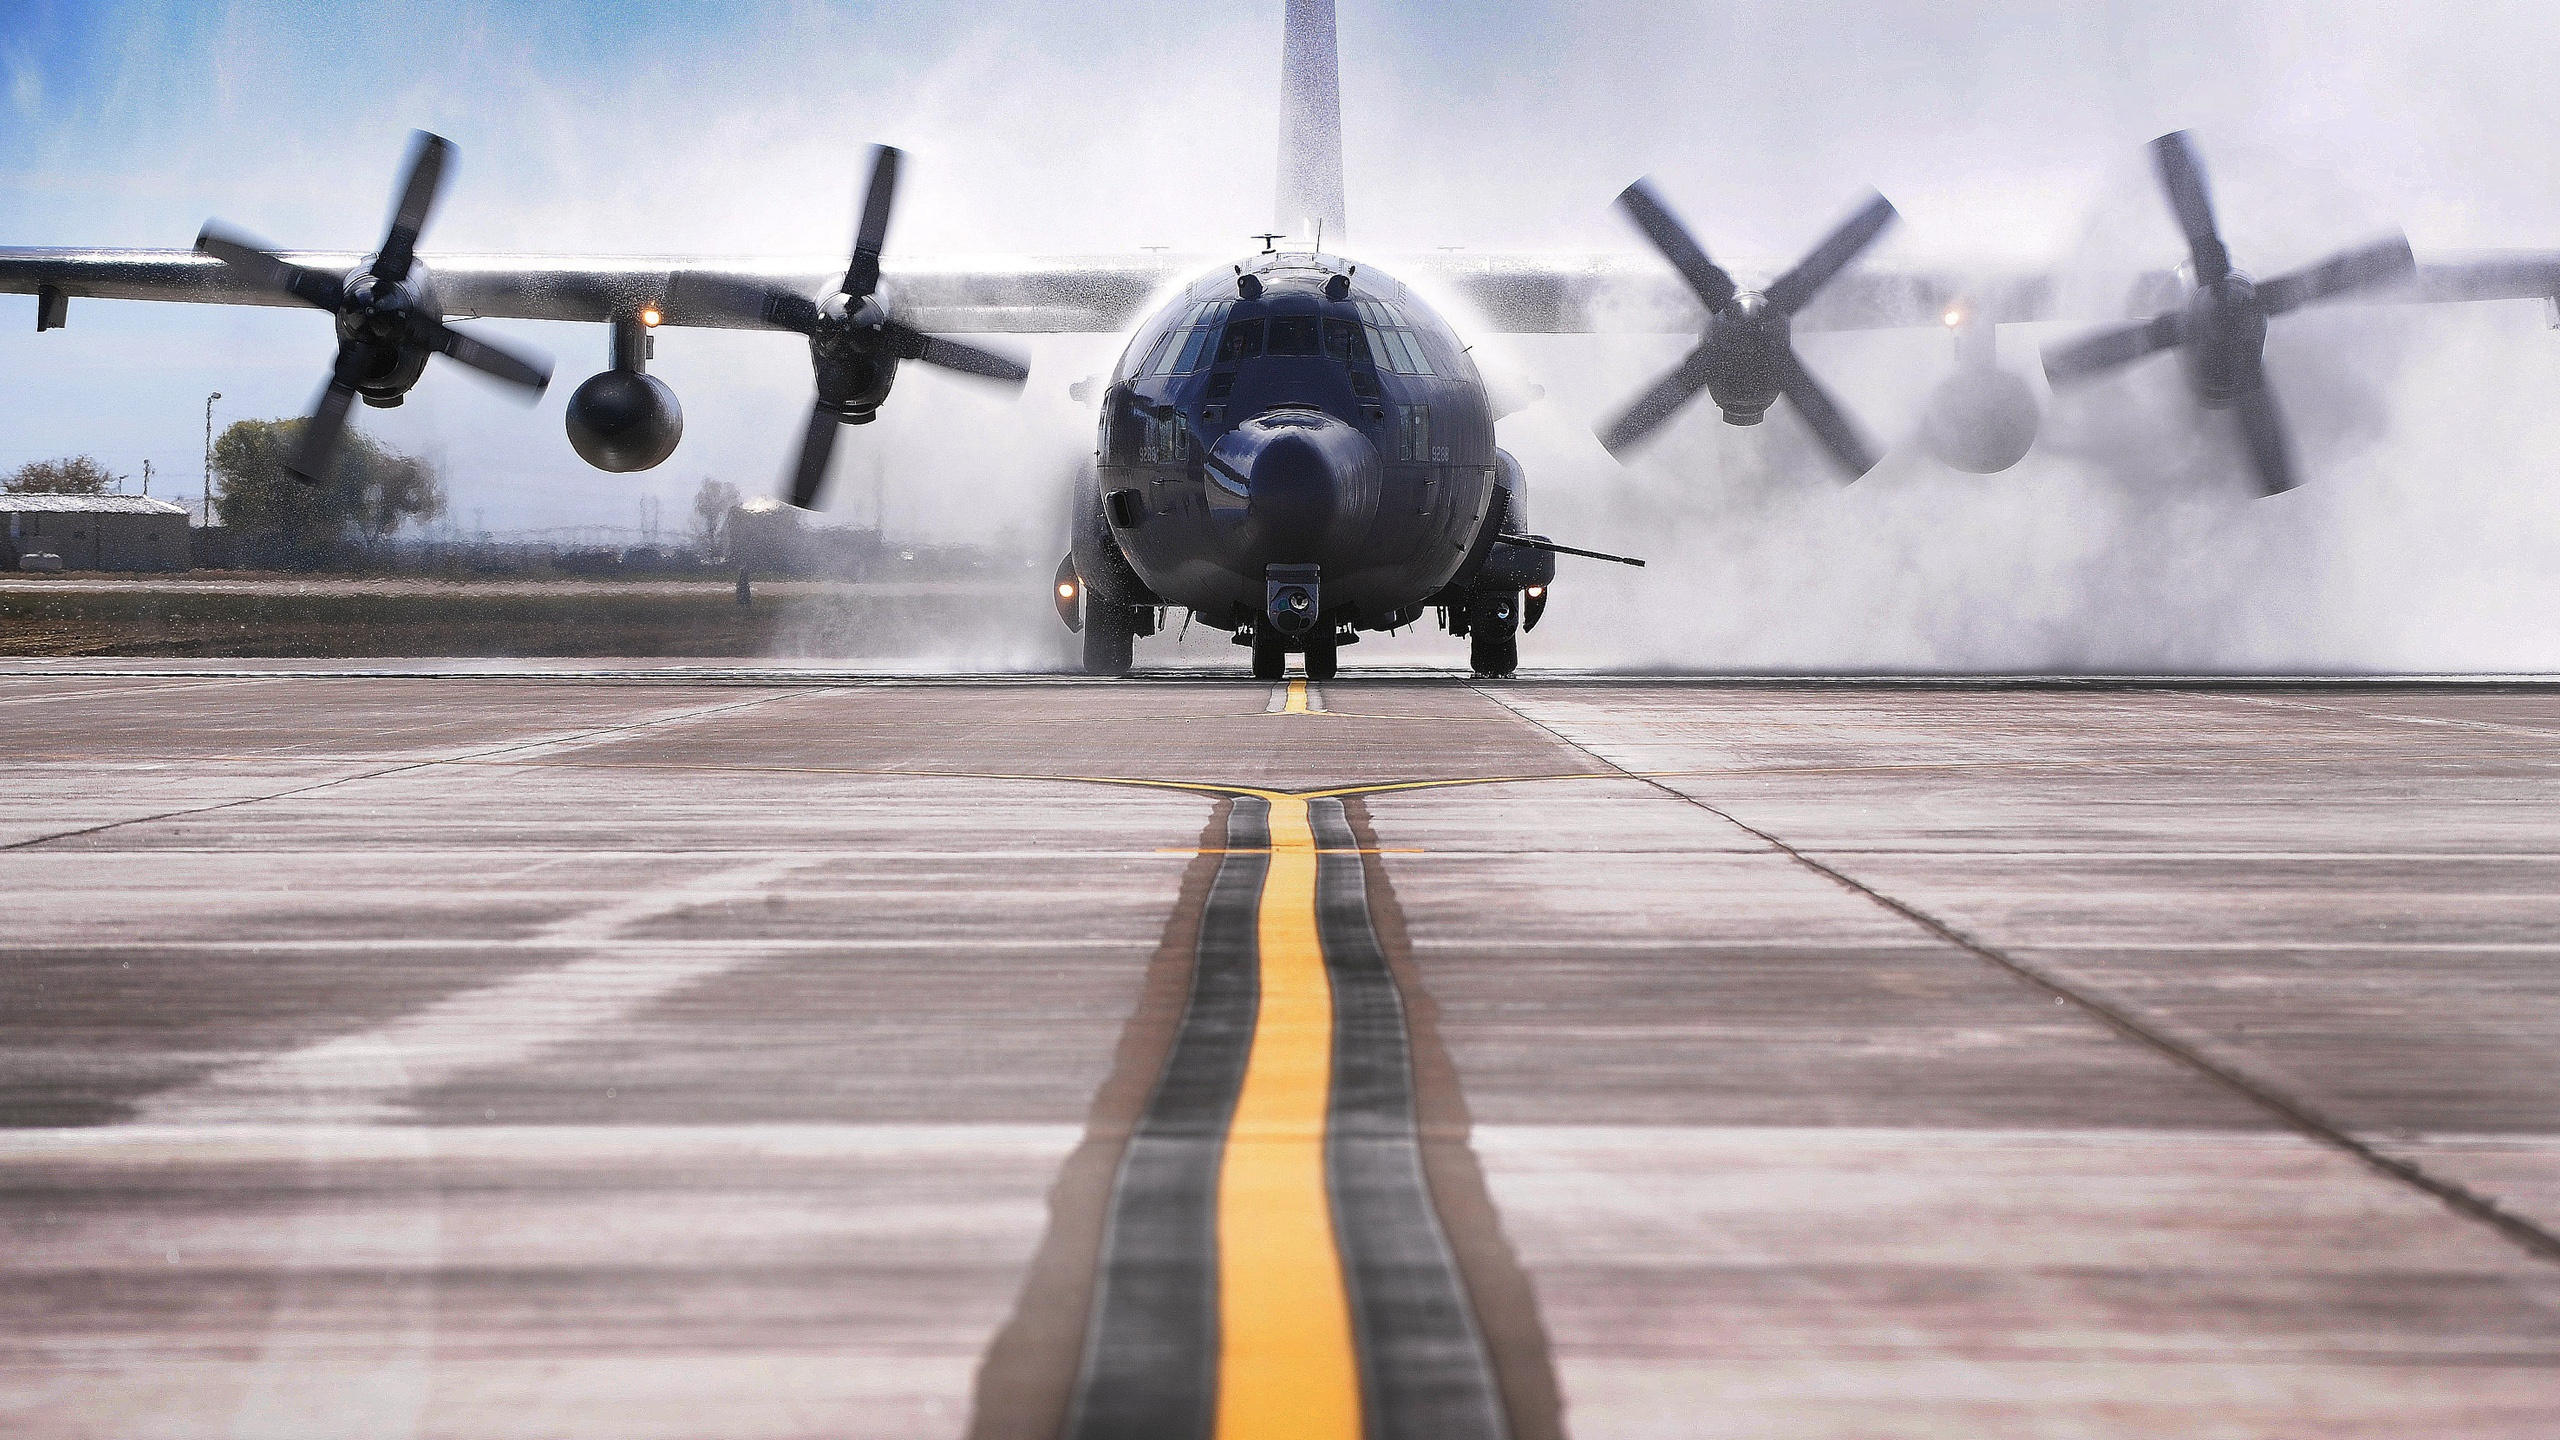 Wallpaper AC 130W Stinger II Aircraft Take Off 2560x1440 QHD Picture